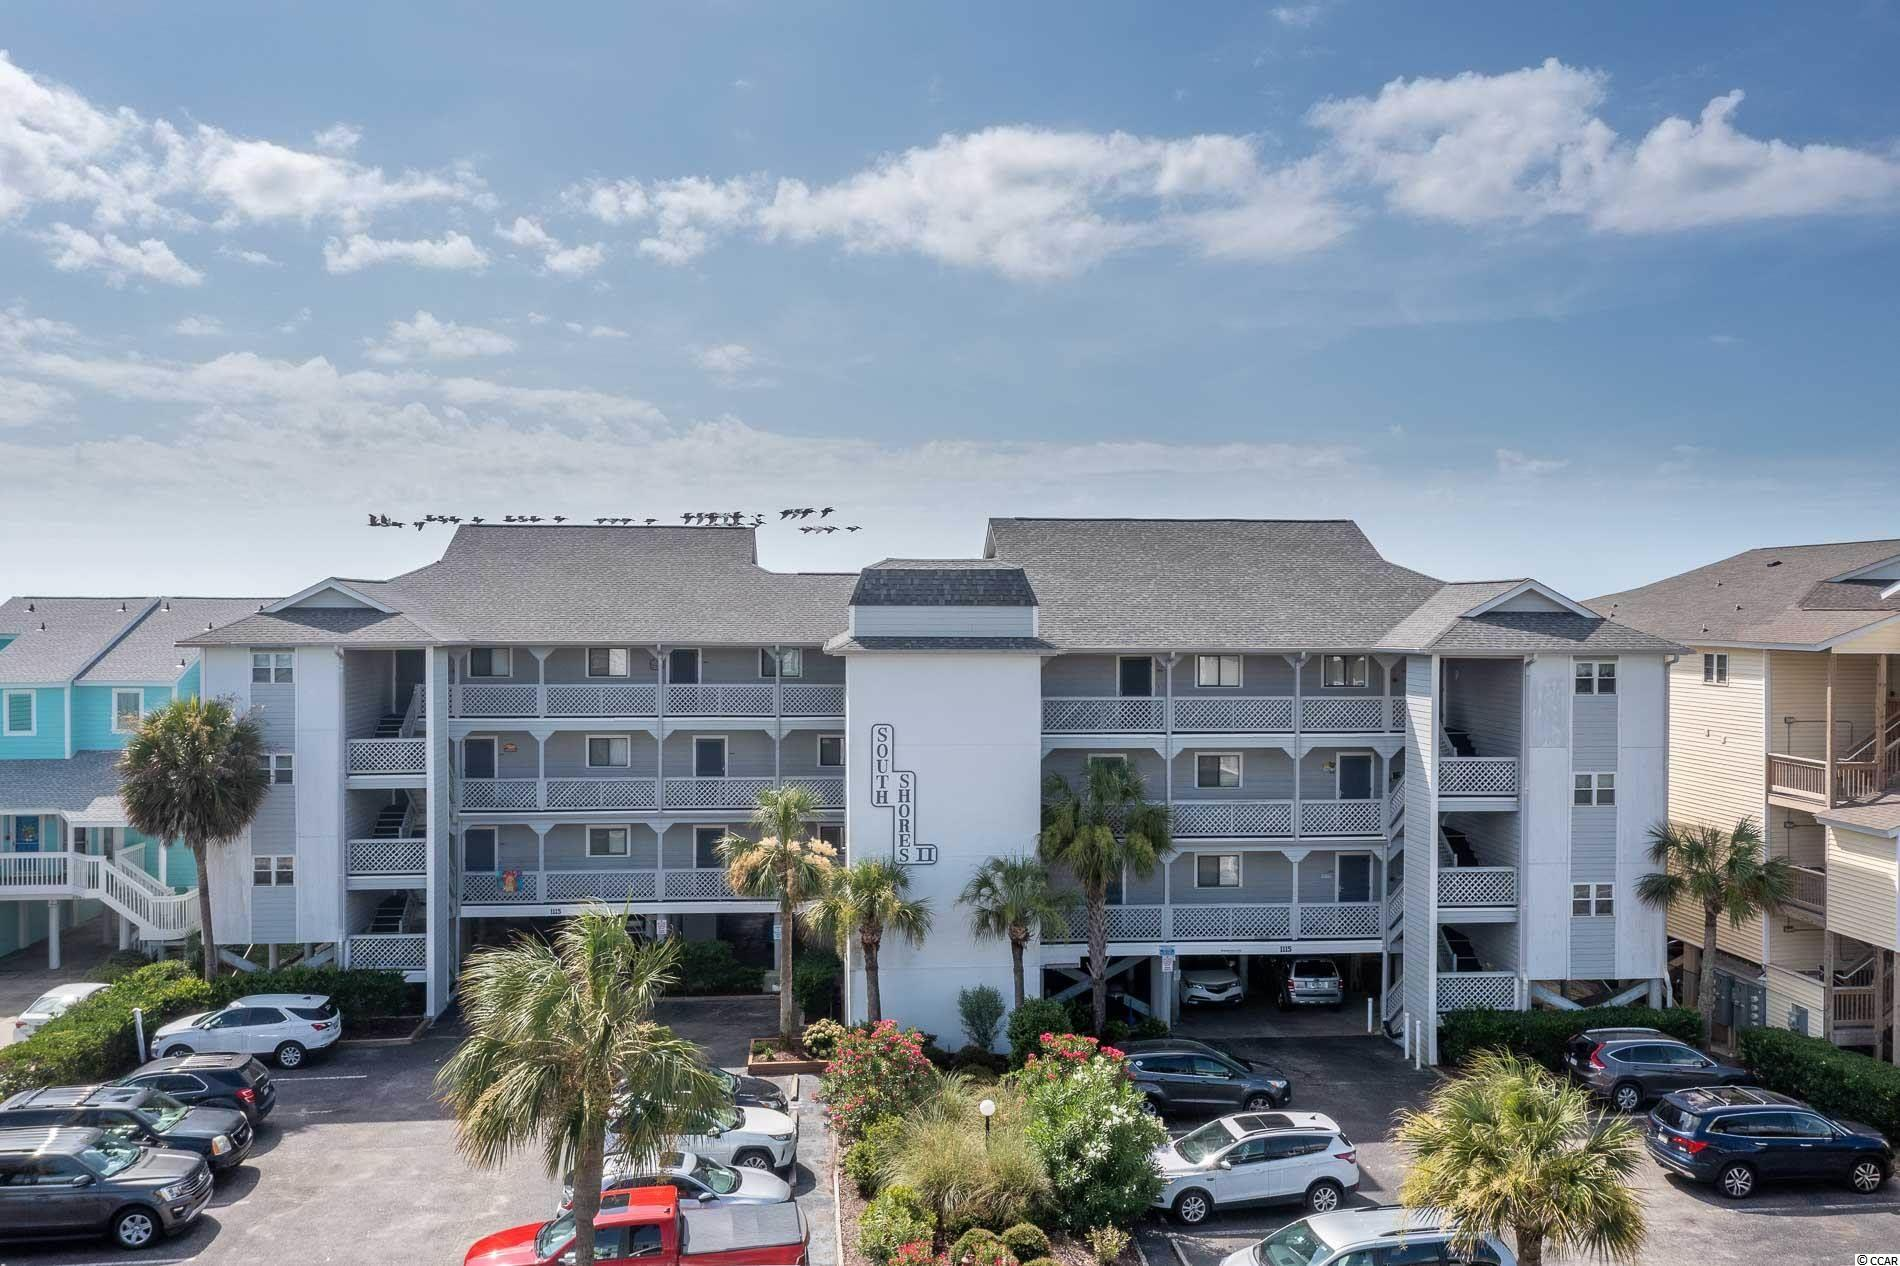 """Enjoy the ocean breezes and the direct oceanfront views of one of the most beautiful stretches of  beach on the Grand Strand from this updated condo at South Shores II in Surfside Beach. Unit 101 has waterproof luxury vinyl plank flooring, granite counter tops , a full sized washer and dryer, a newer impact resistant sliding glass door in the living room and a new HVAC unit outside. There is a storage room off of the balcony as well as a private Owner storage closet on the ground level to store beach chairs and beach """"toys"""". This well maintained complex offers an ocean front pool and grilling area as well as an ELEVATOR!  Enjoy fishing piers nearby and the restaurants and water sports offered at  the  Marsh Walk in Murrells Inlet...OR...take a short drive to enjoy all of the attractions and amenities in Myrtle Beach. Whether you are looking for a second home, vacation rental property or a primary residence, you don't want to miss out on this opportunity!"""